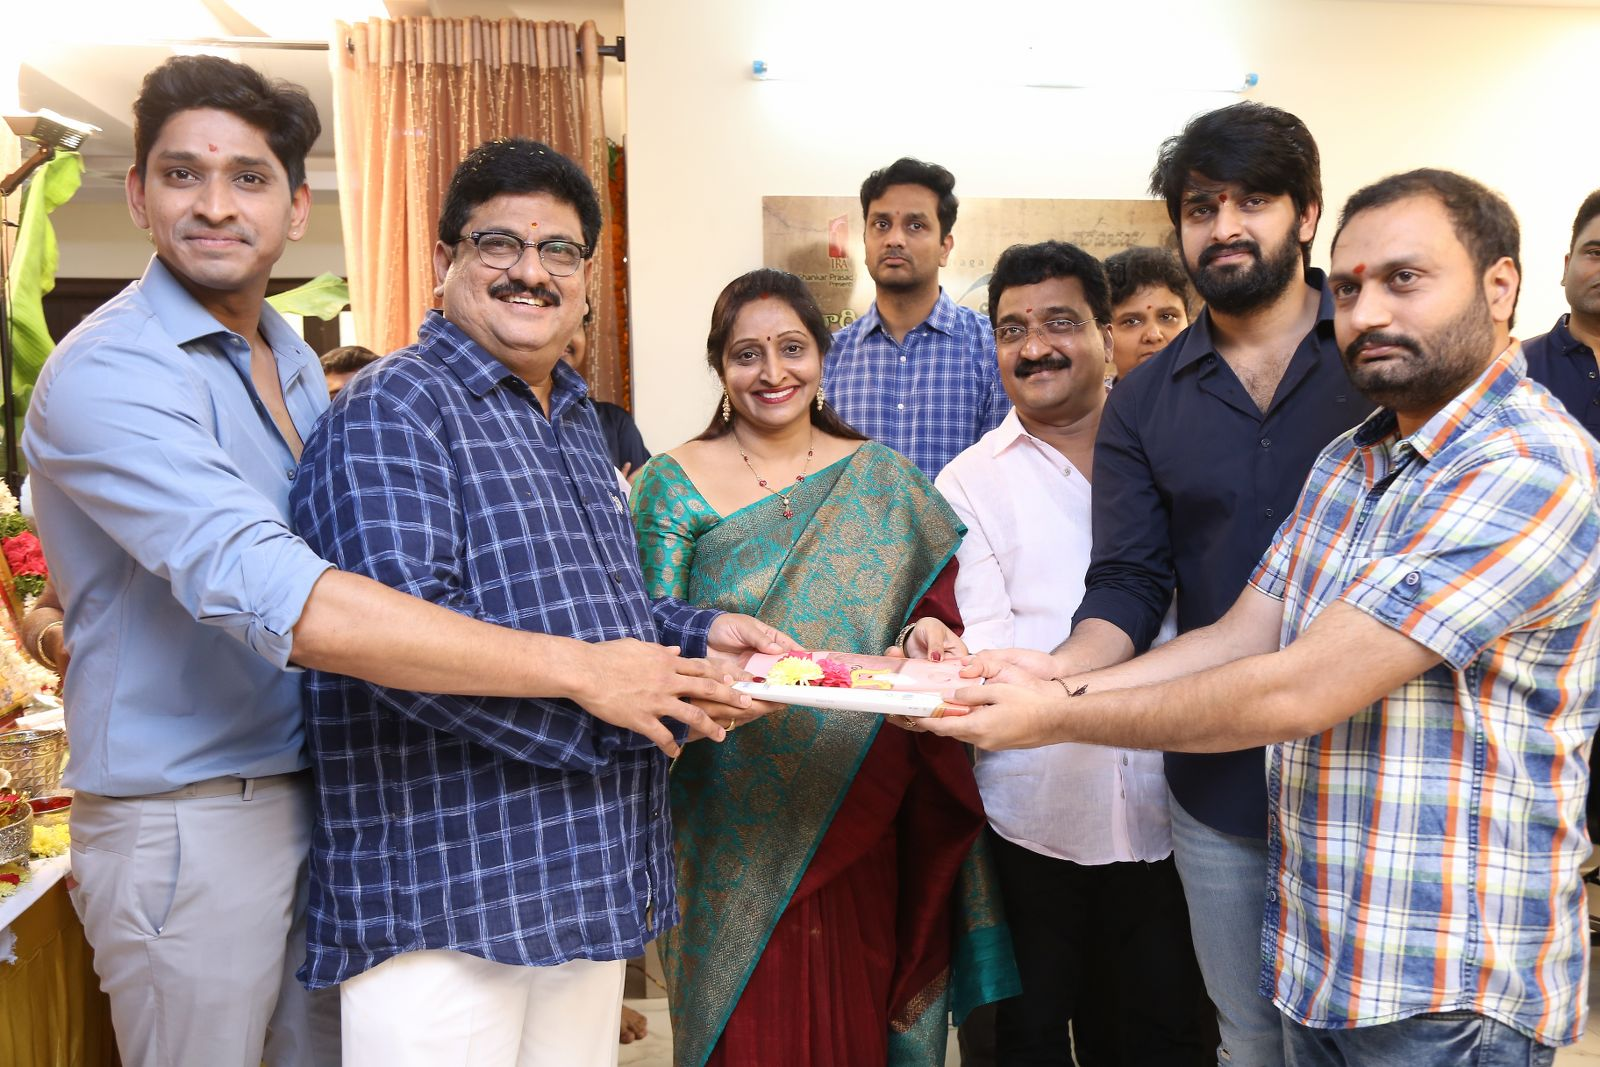 Naga Shaurya's AtNarthanasala Shooting to start in April